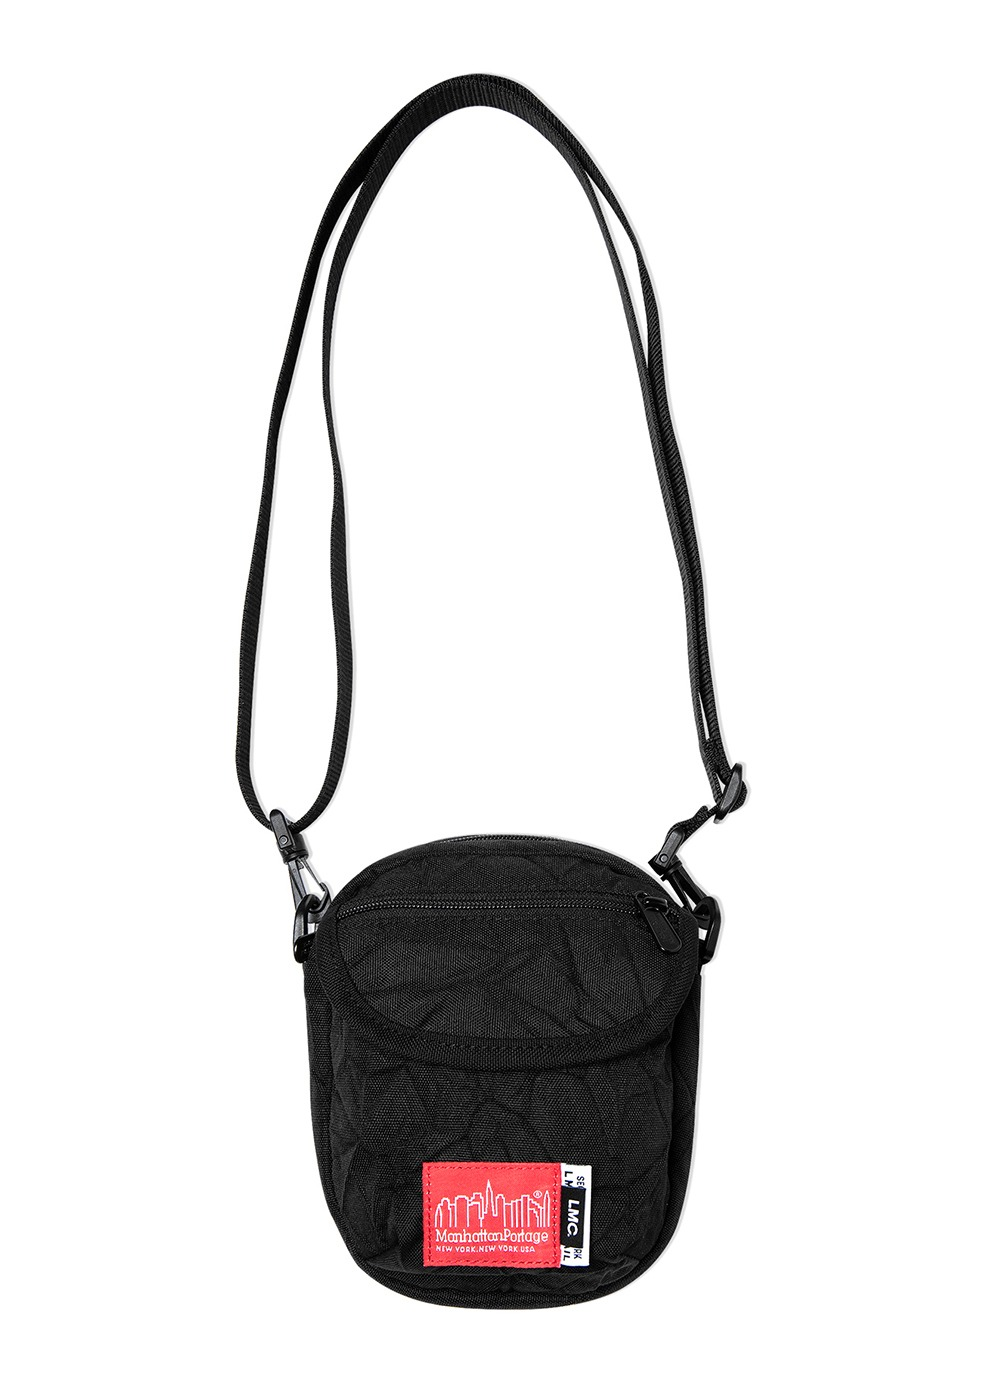 LMC X MANHATTAN PORTAGE HUDSON BAG (SM) black